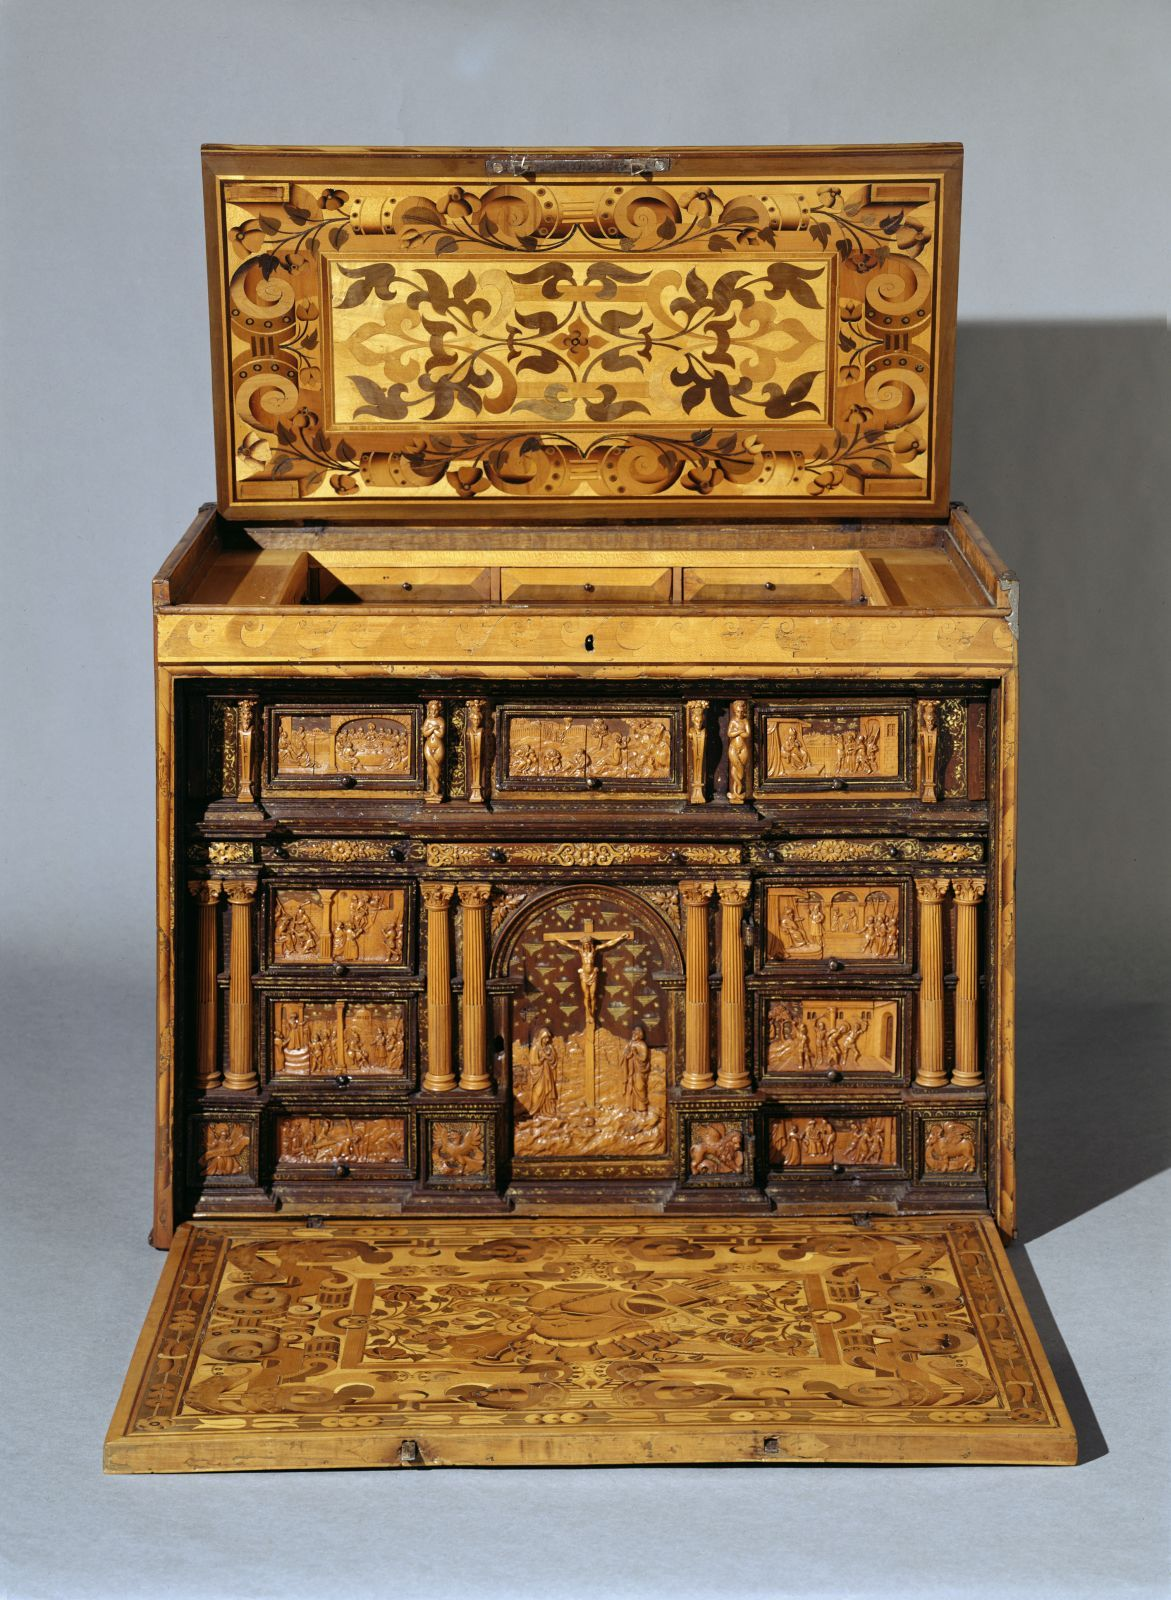 Möbel Augsburg Writing Cabinet, C. 1560. Augsburg. 51 X 64 X 34,5 Cm. Spruce, Boxwood, Carved, Marquetry In V… | Renaissance Furniture, Baroque Furniture, Wall Clock Vintage Style